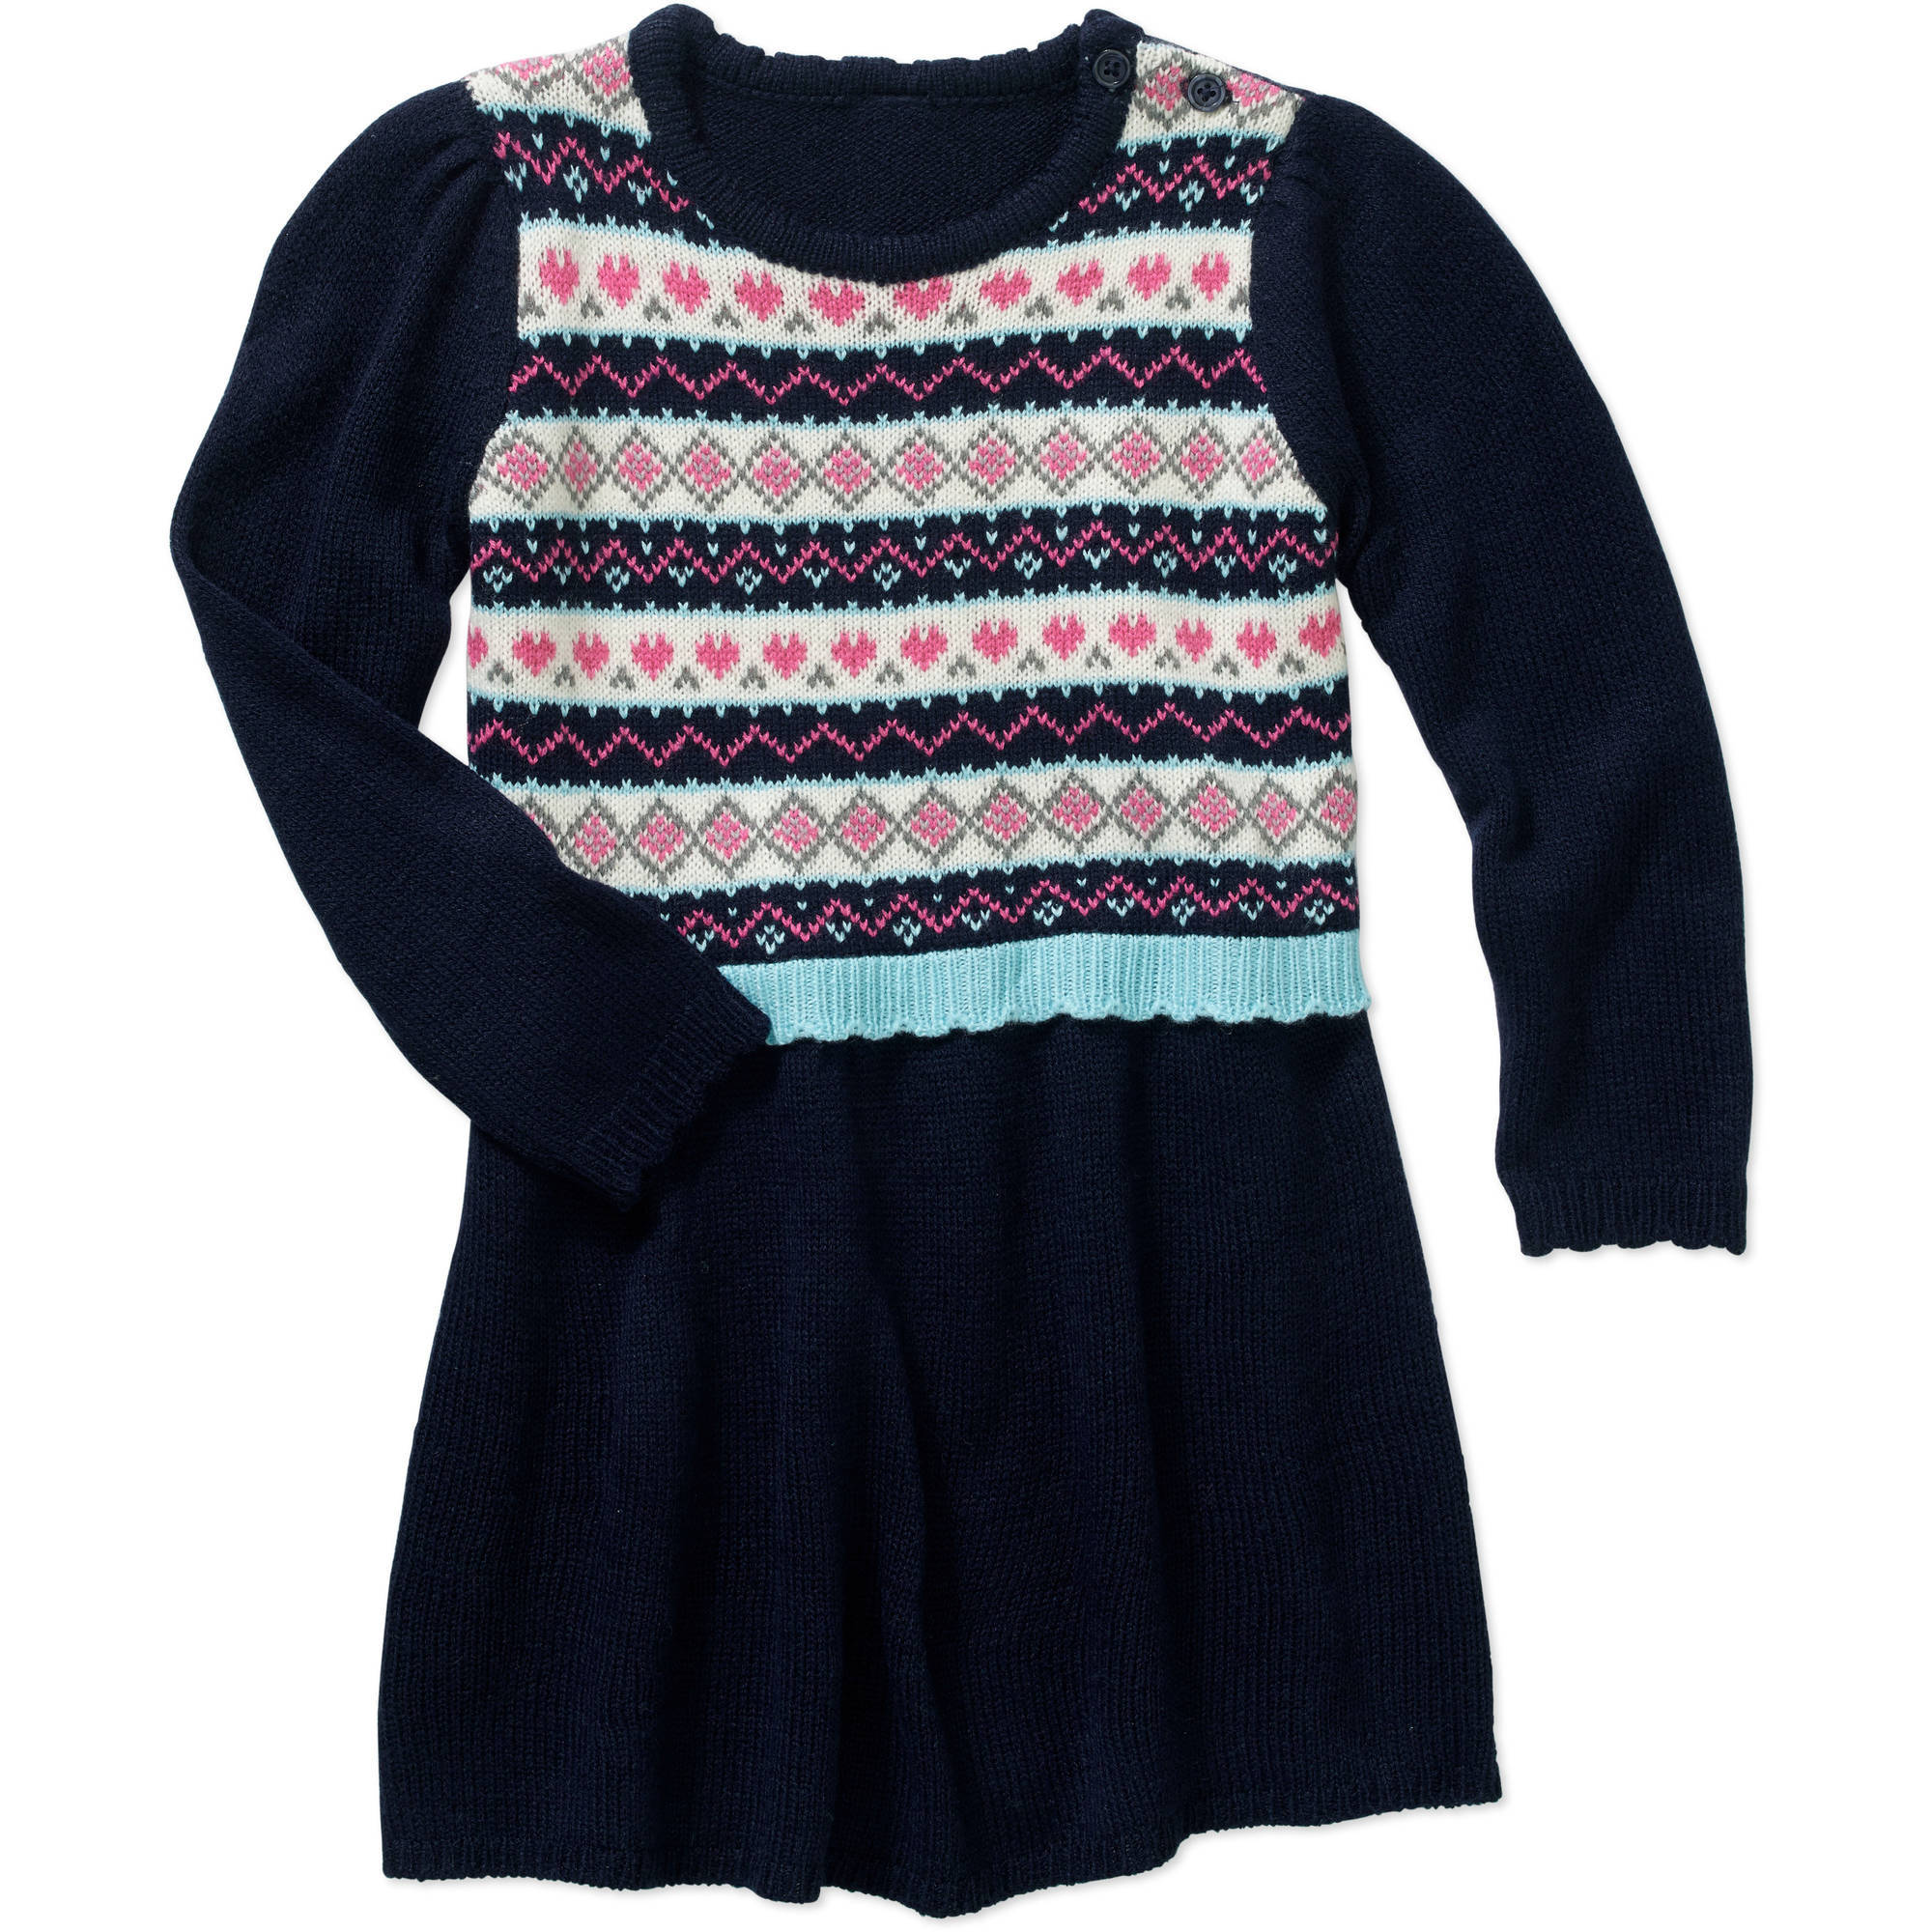 Healthtex Toddler Girls' Blue Drop Waist Sweater Dress